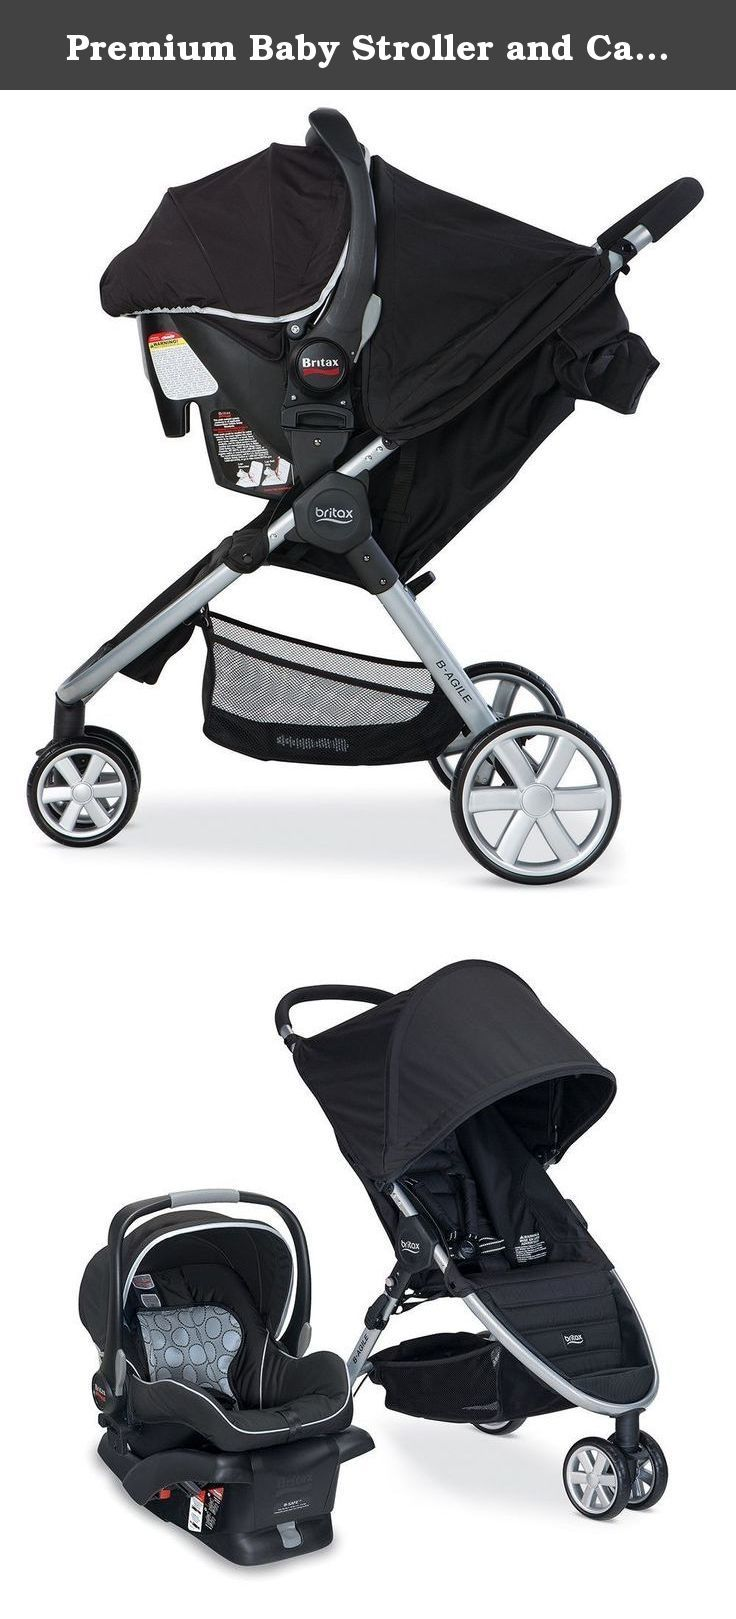 best 25 britax pram ideas on pinterest britax double stroller britax for twins and double. Black Bedroom Furniture Sets. Home Design Ideas